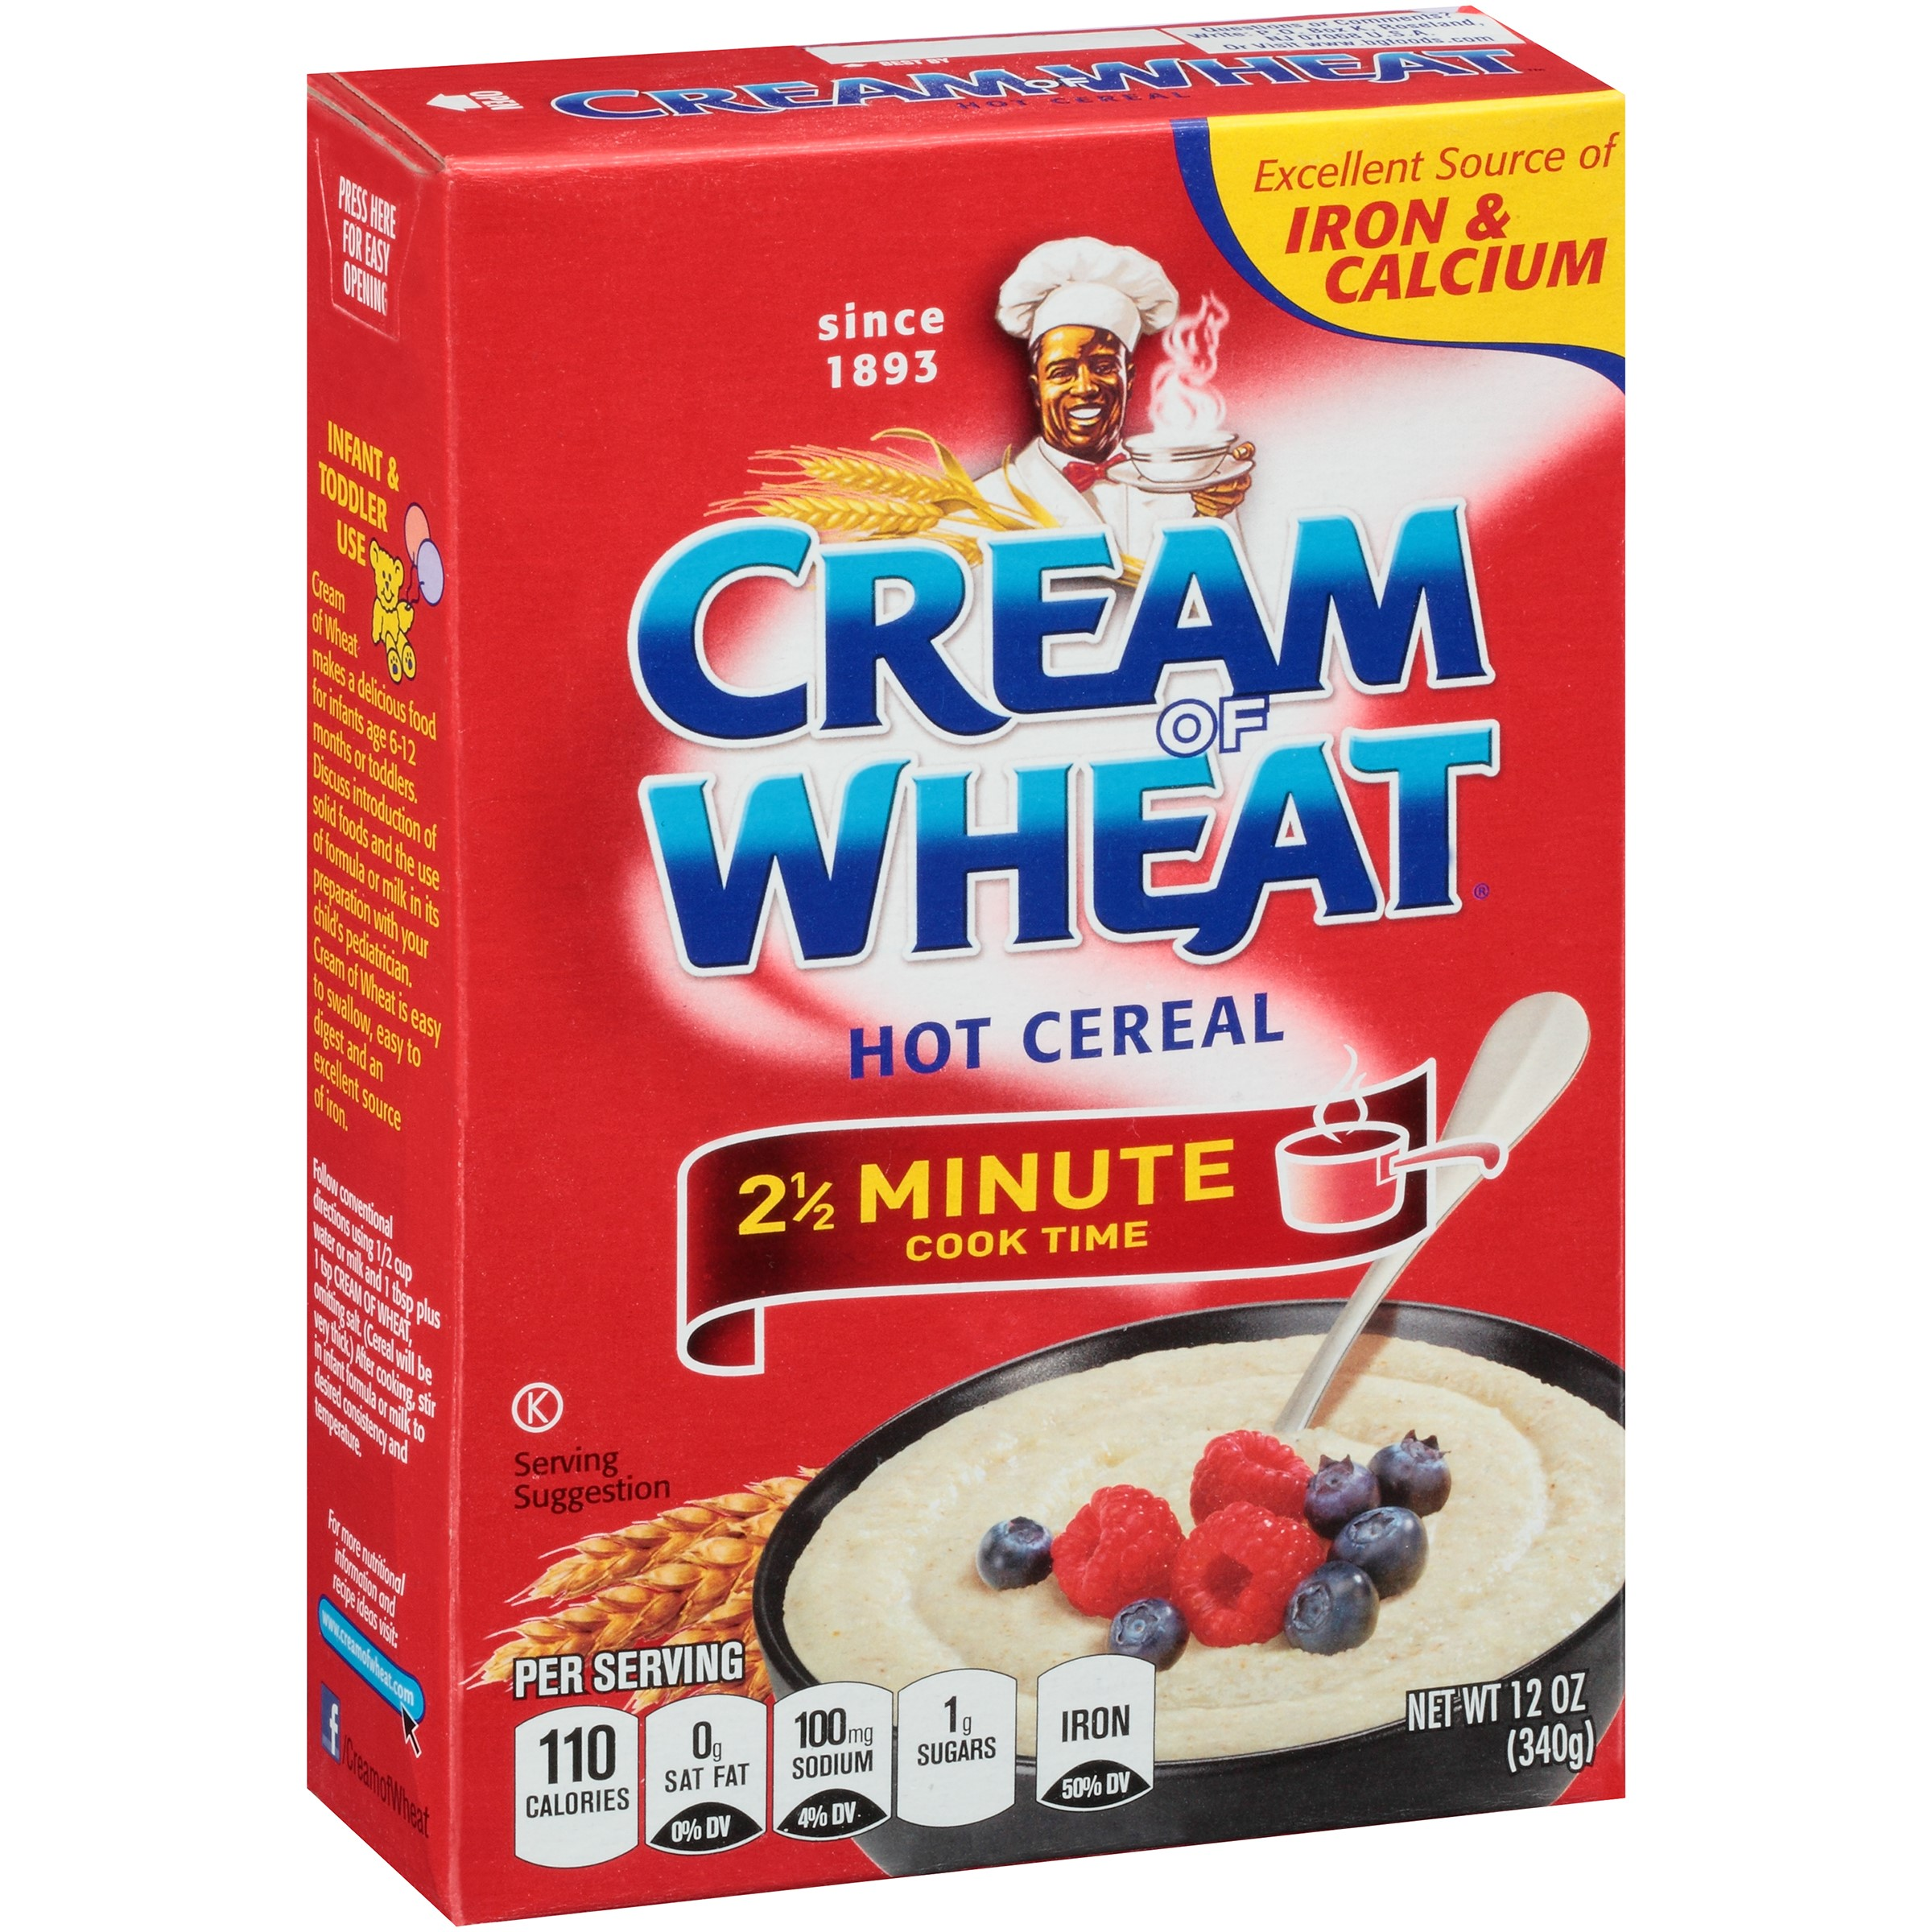 Cream Of Wheat Stove Top Hot Cereal, Original, 12 Oz